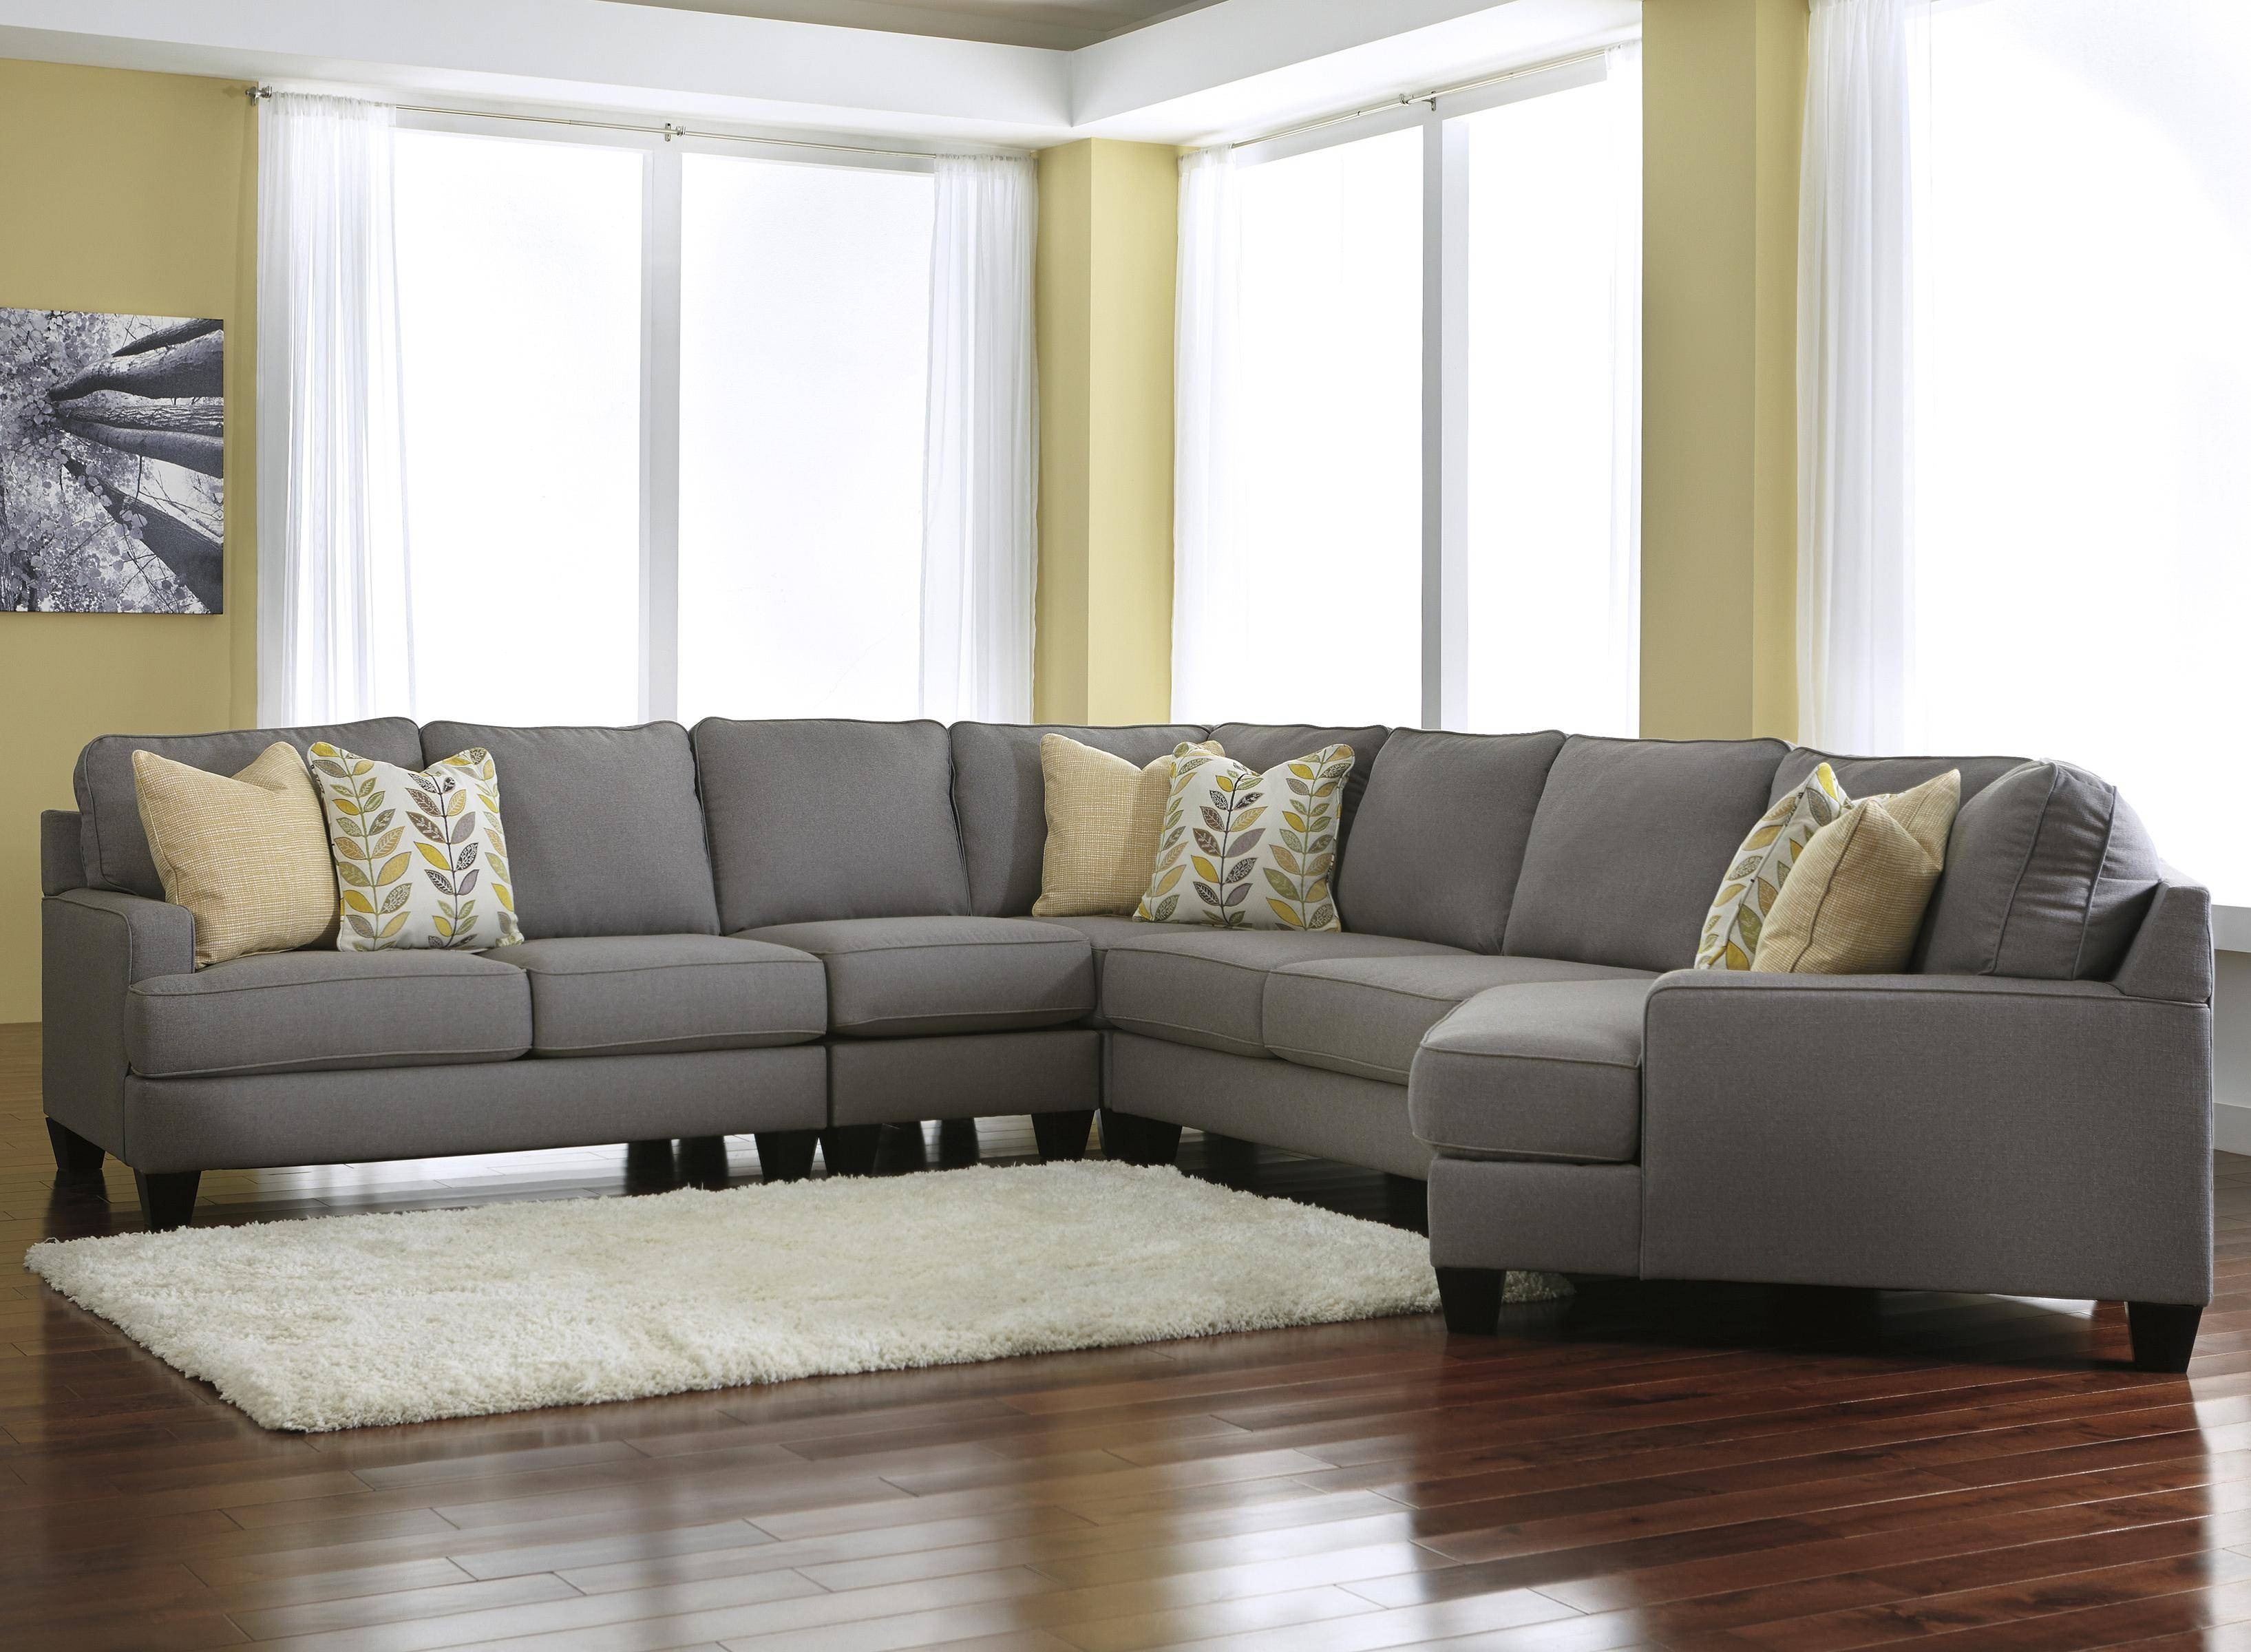 Signature Designashley Chamberly - Alloy Modern 5-Piece inside Cuddler Sectional Sofa (Image 23 of 30)